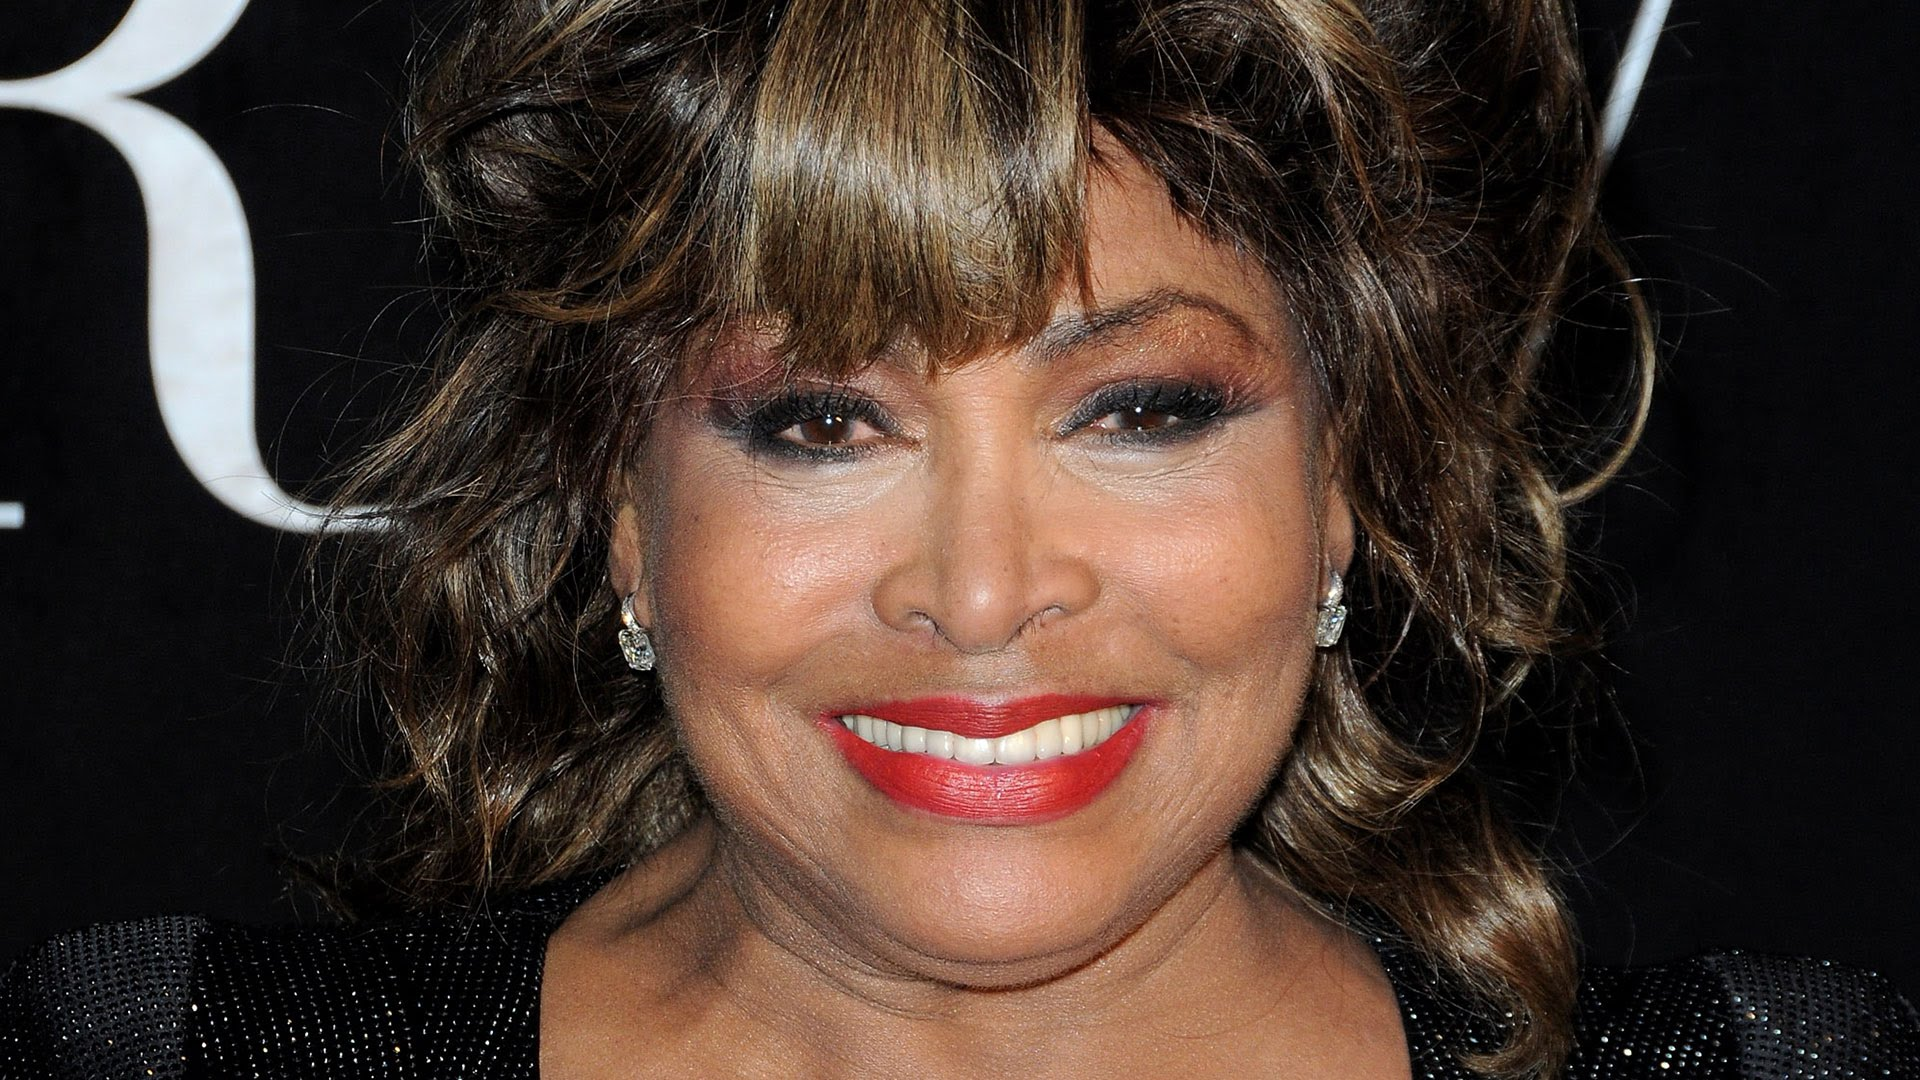 who is tina turner dating Spin's classic interview with ike turner isn't just full of his pathetic excuses for his abuse of tina turner but is also an unflinching portrait of a man consumed by bitterness as tina's star rises.